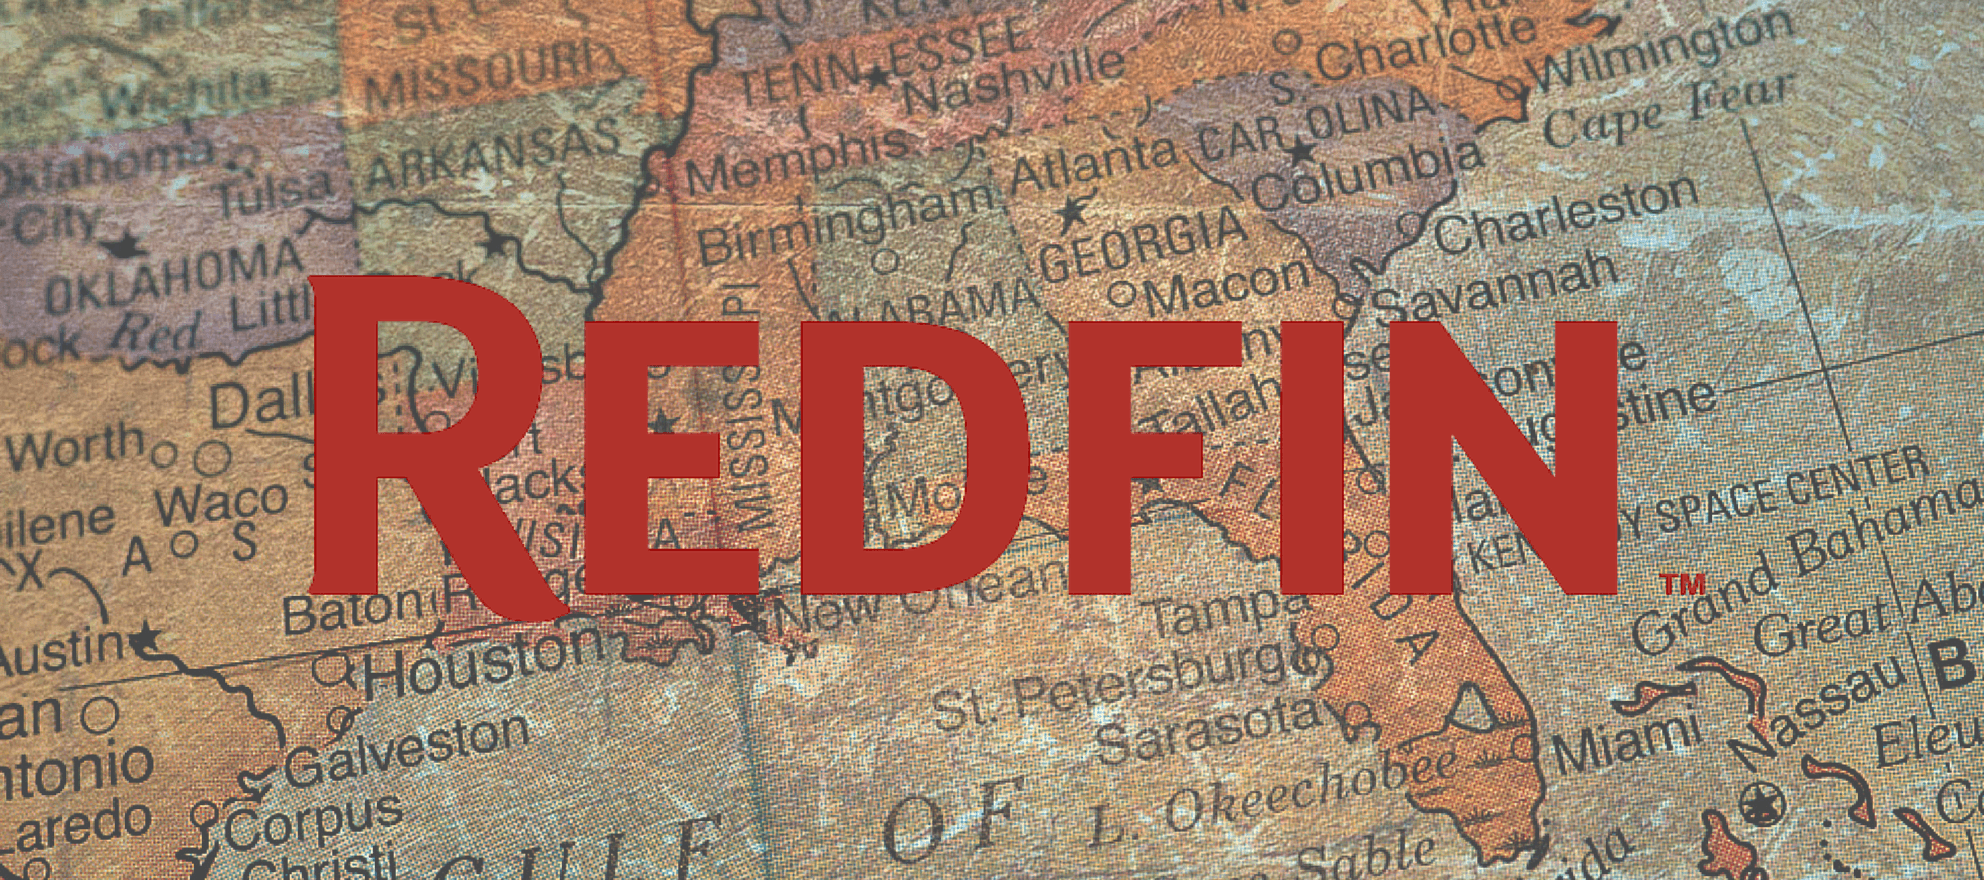 Redfin sets up shop in Tennessee and southwest Florida